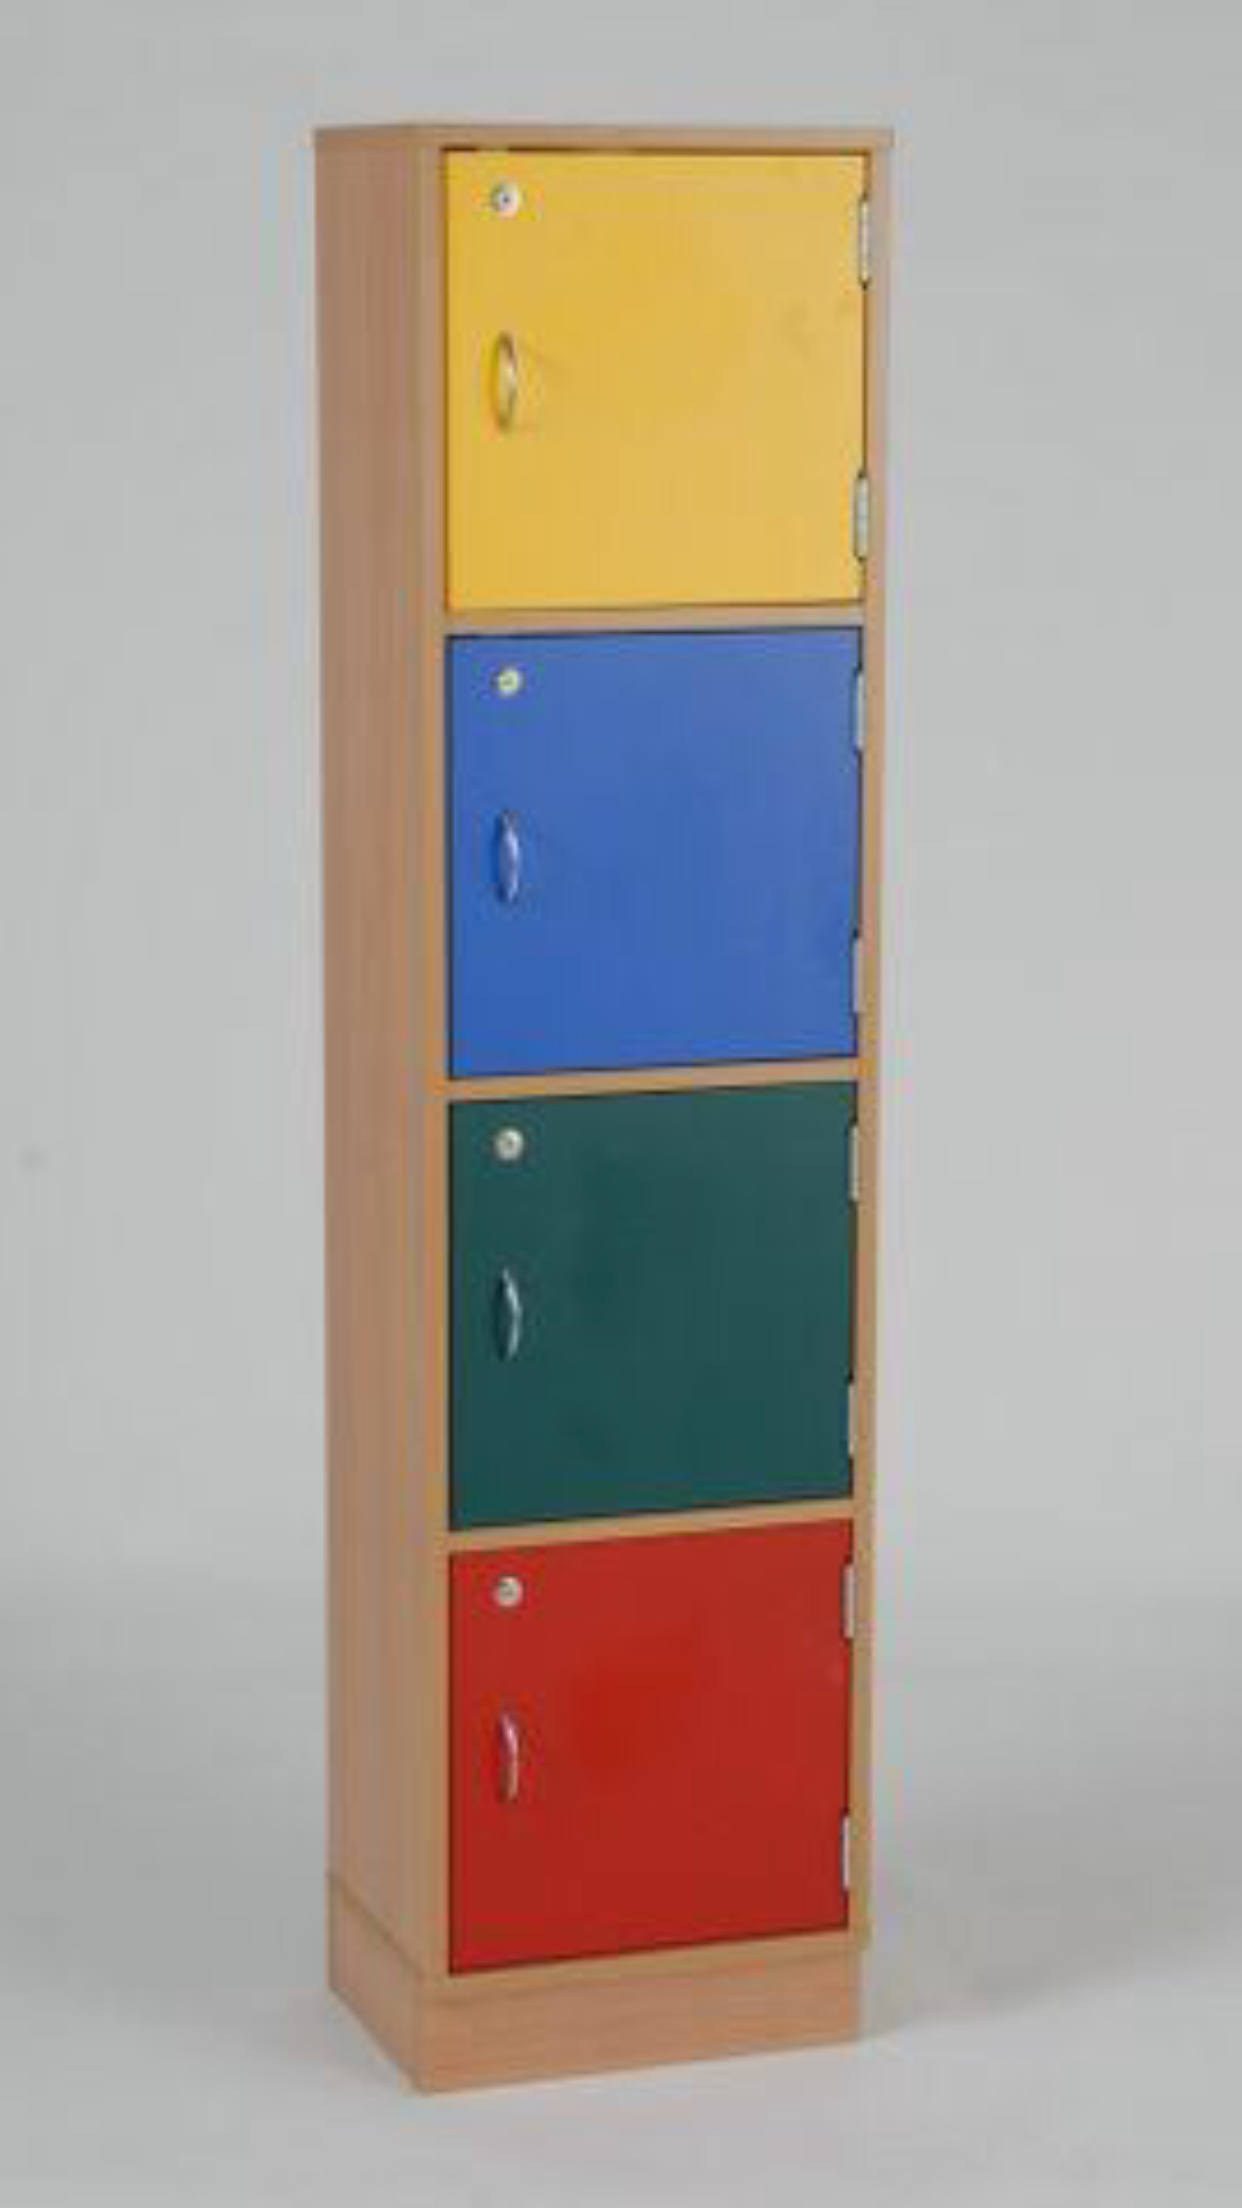 Wooden locker 4 door beech 1695h x 415d x 300d coloured for Wood lockers with doors